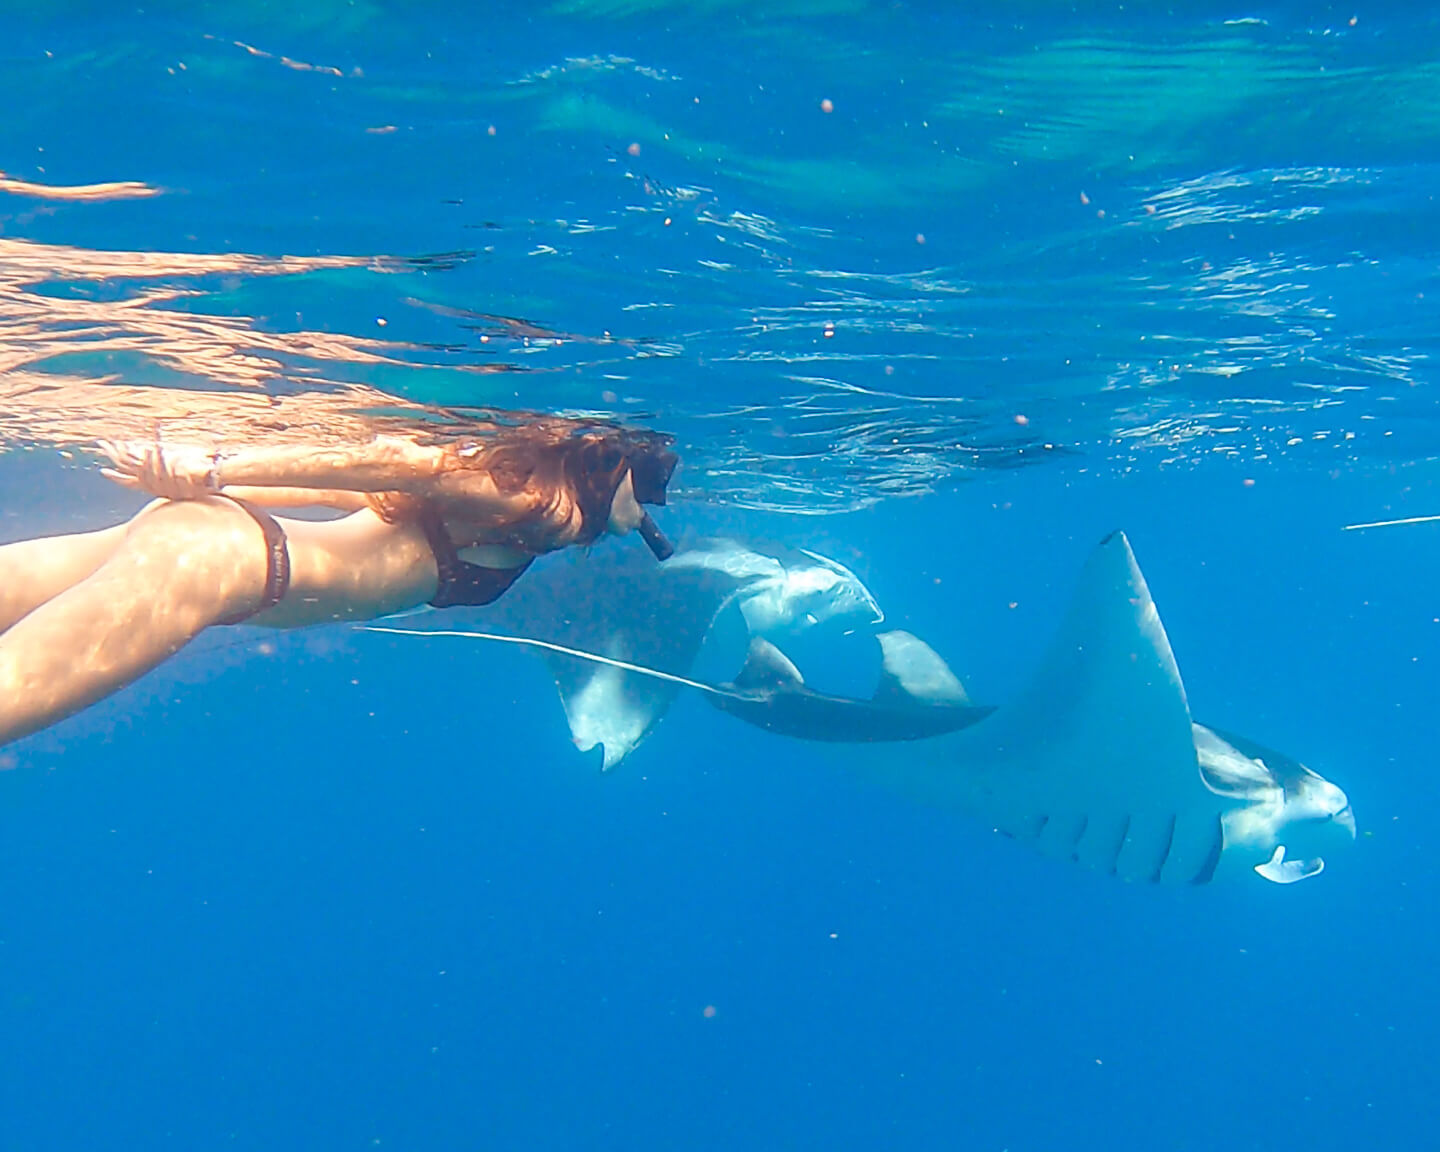 snorkeling with mantas in the Maldives